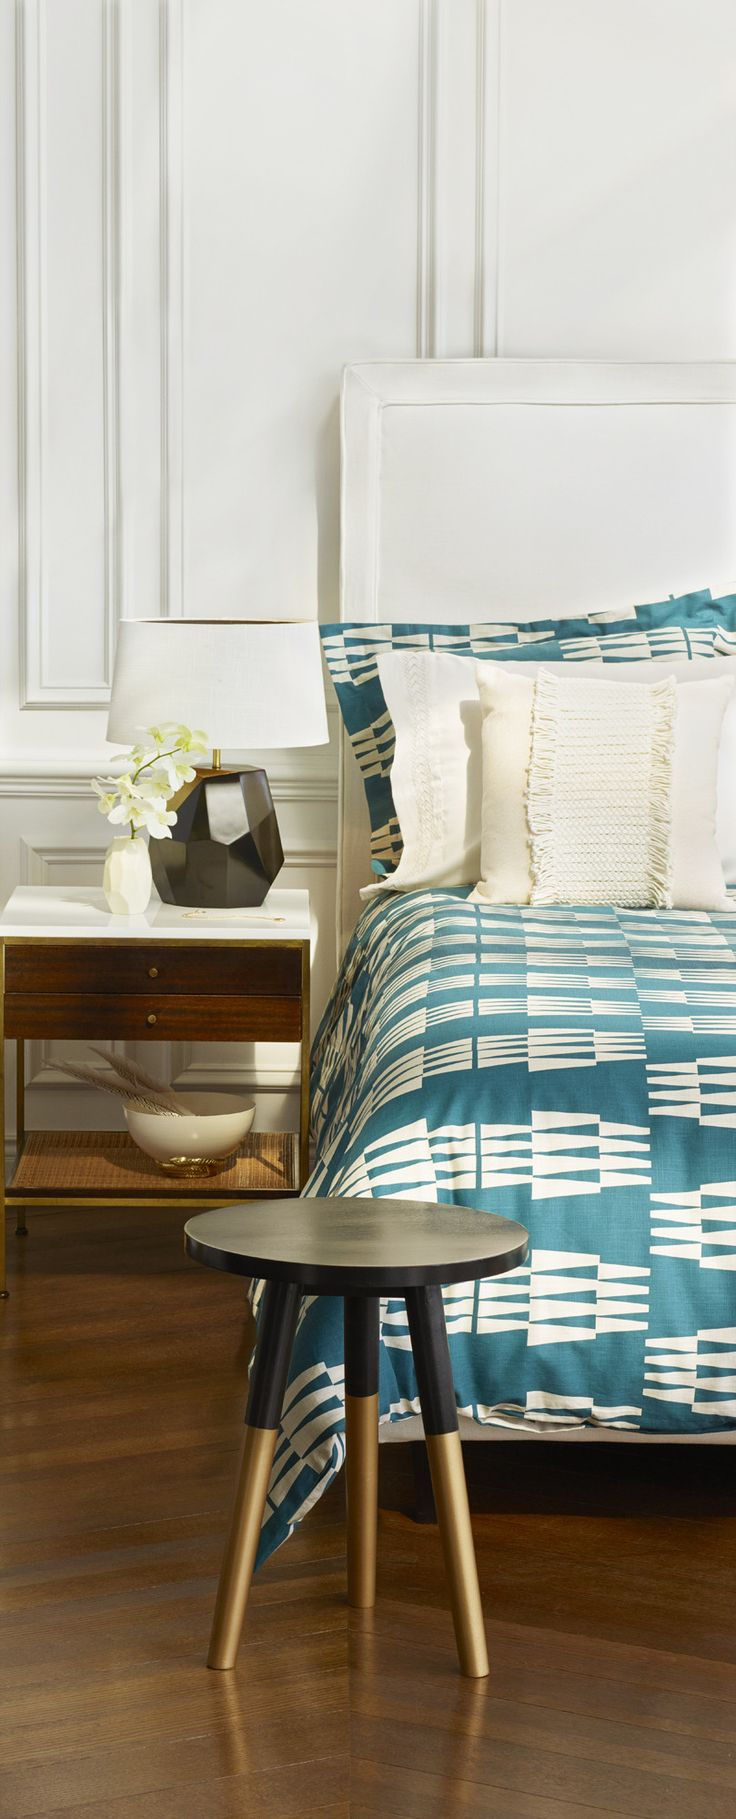 Cool, calm, and collected. Inspiration for a well-edited home from Nate Berkus, exclusively at Target.